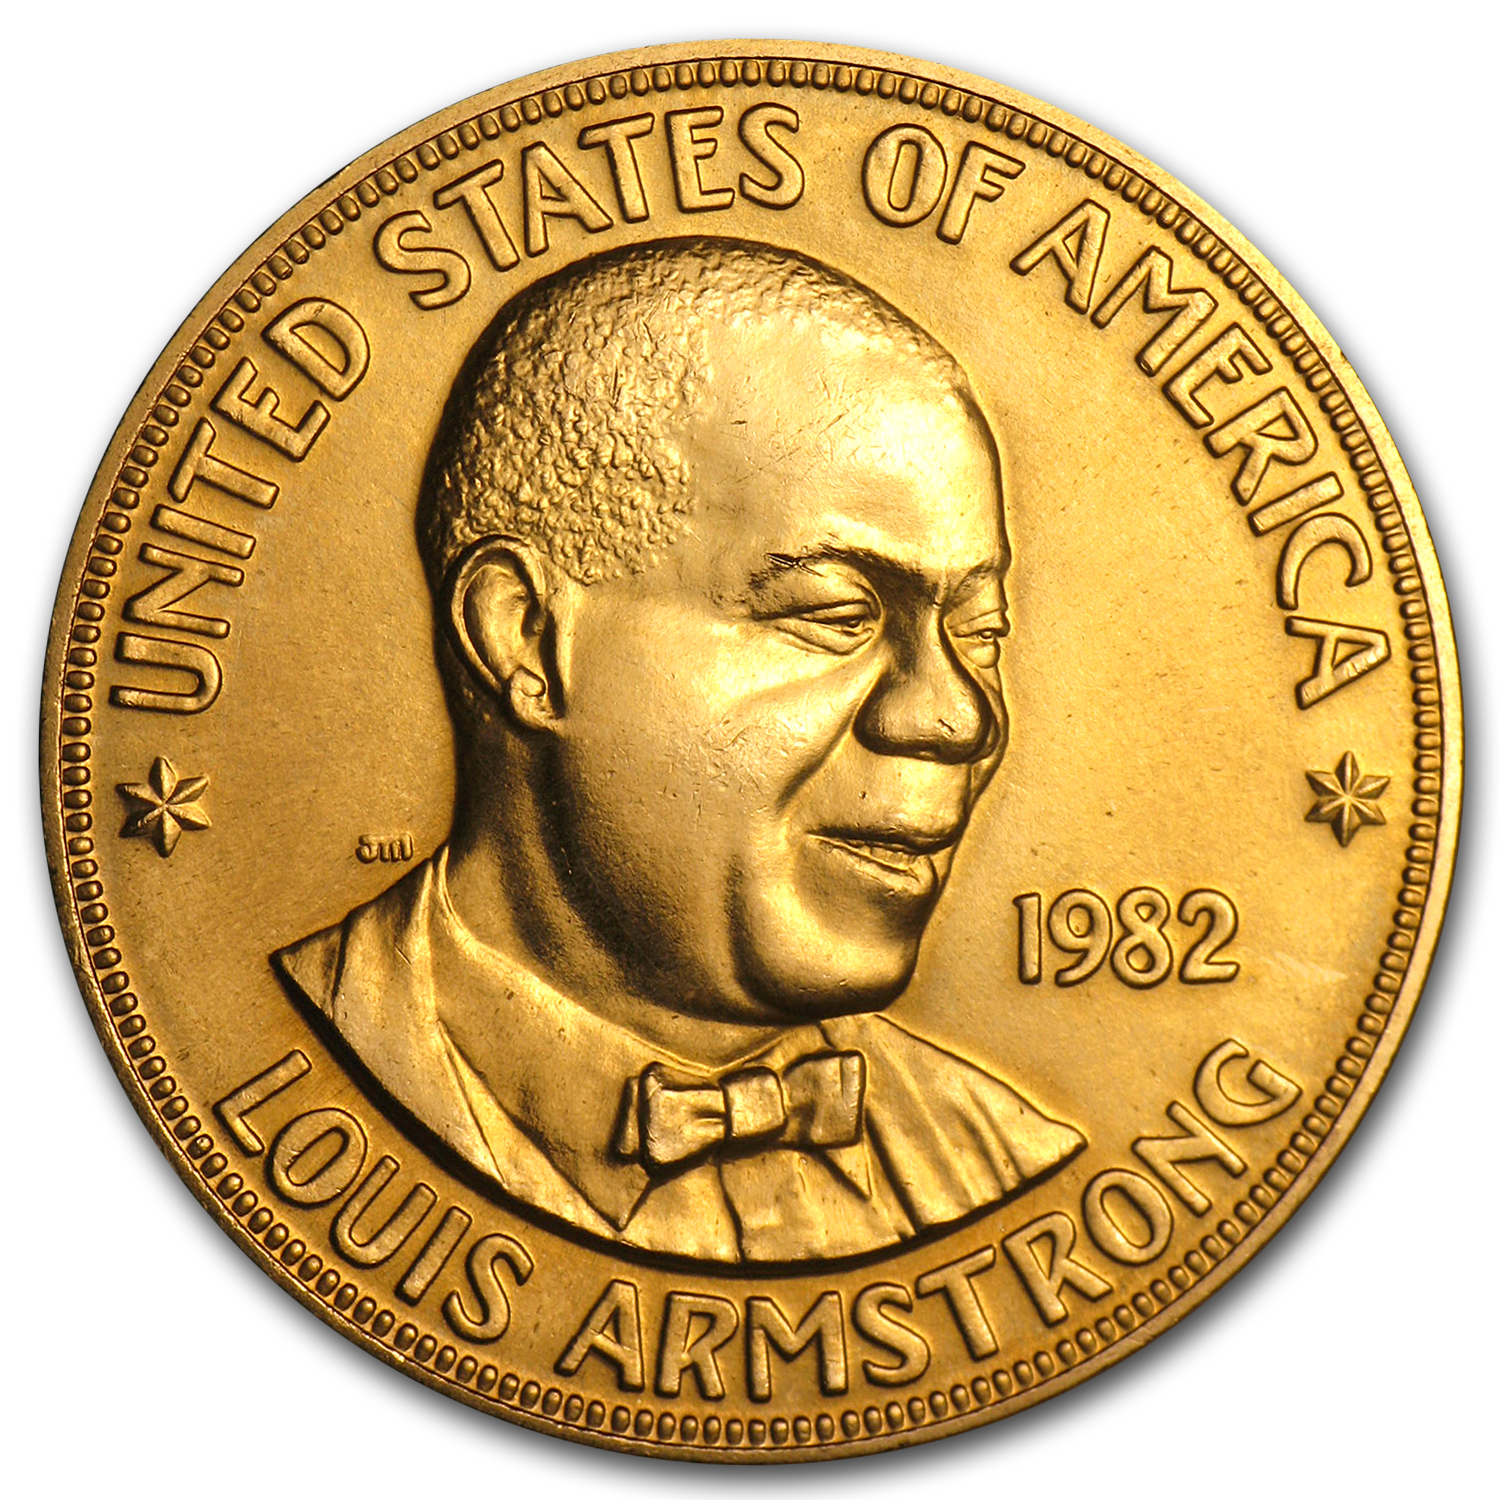 U.S. Mint 1 oz Gold Commemorative Arts Medal Louis Armstrong